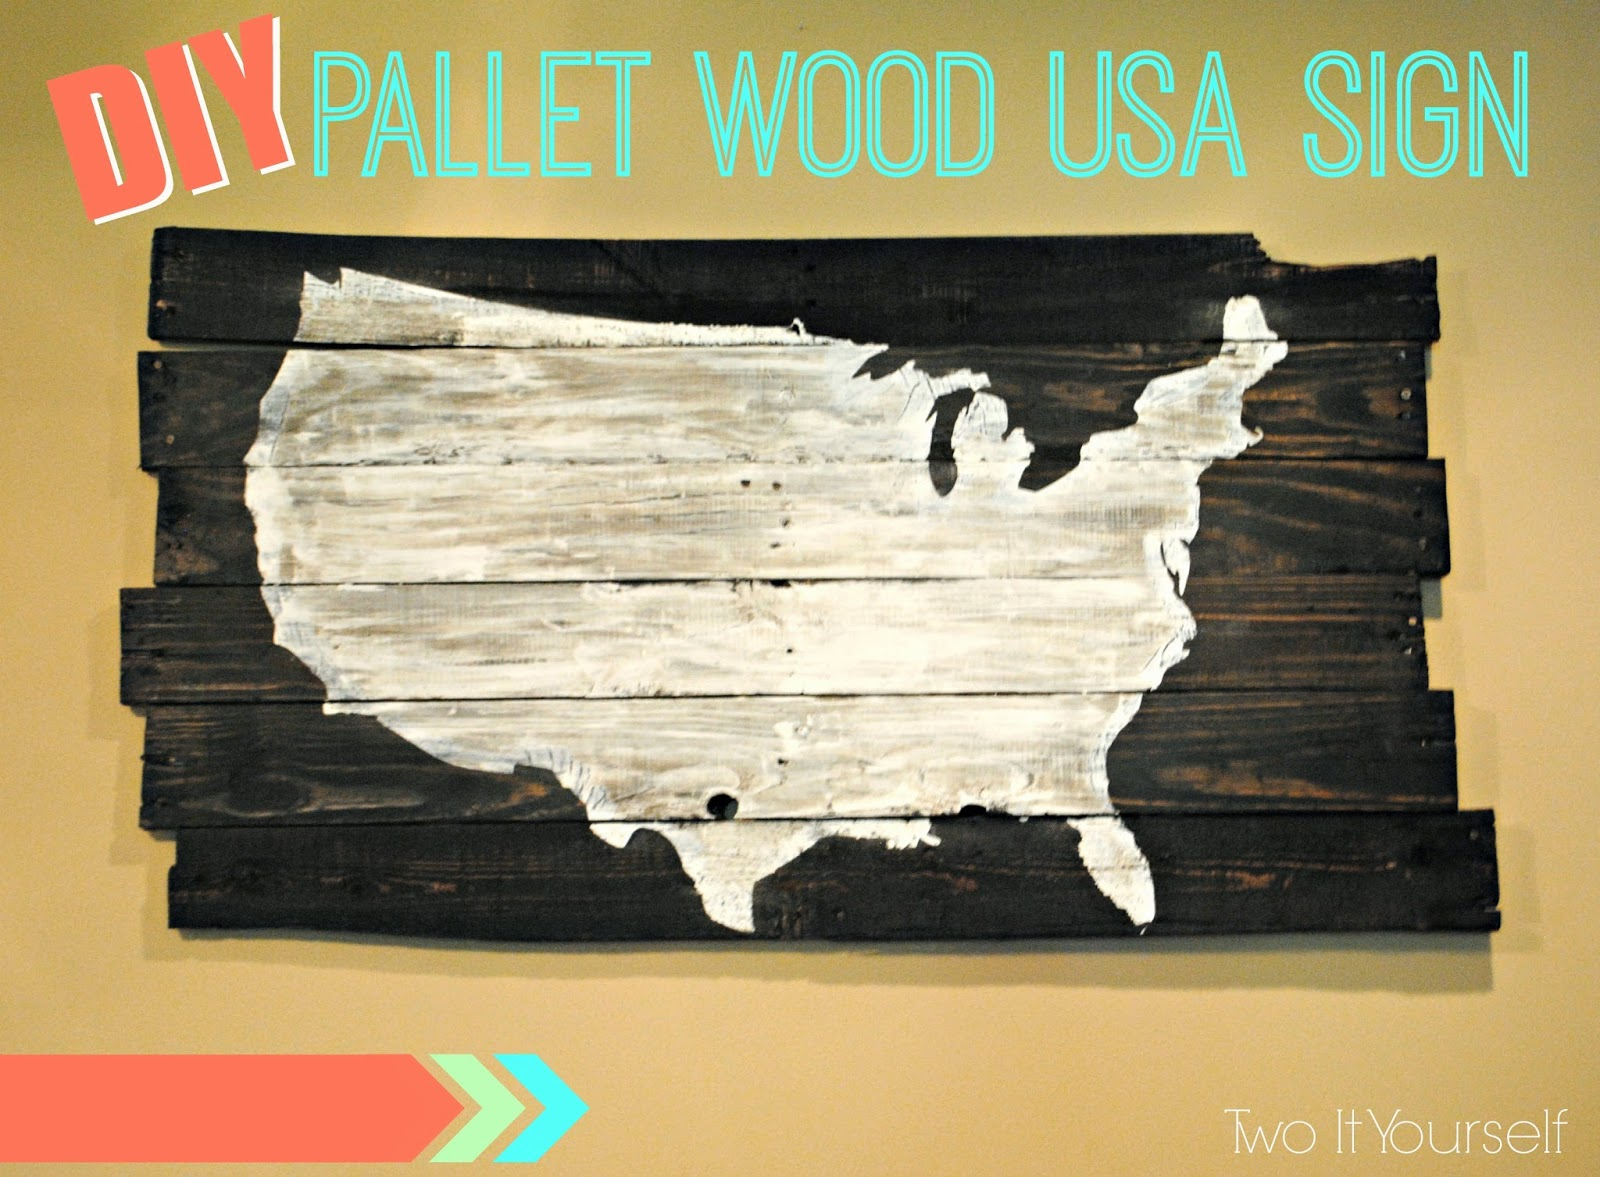 DIY, do it yourself, wood, pallet, usa, sign